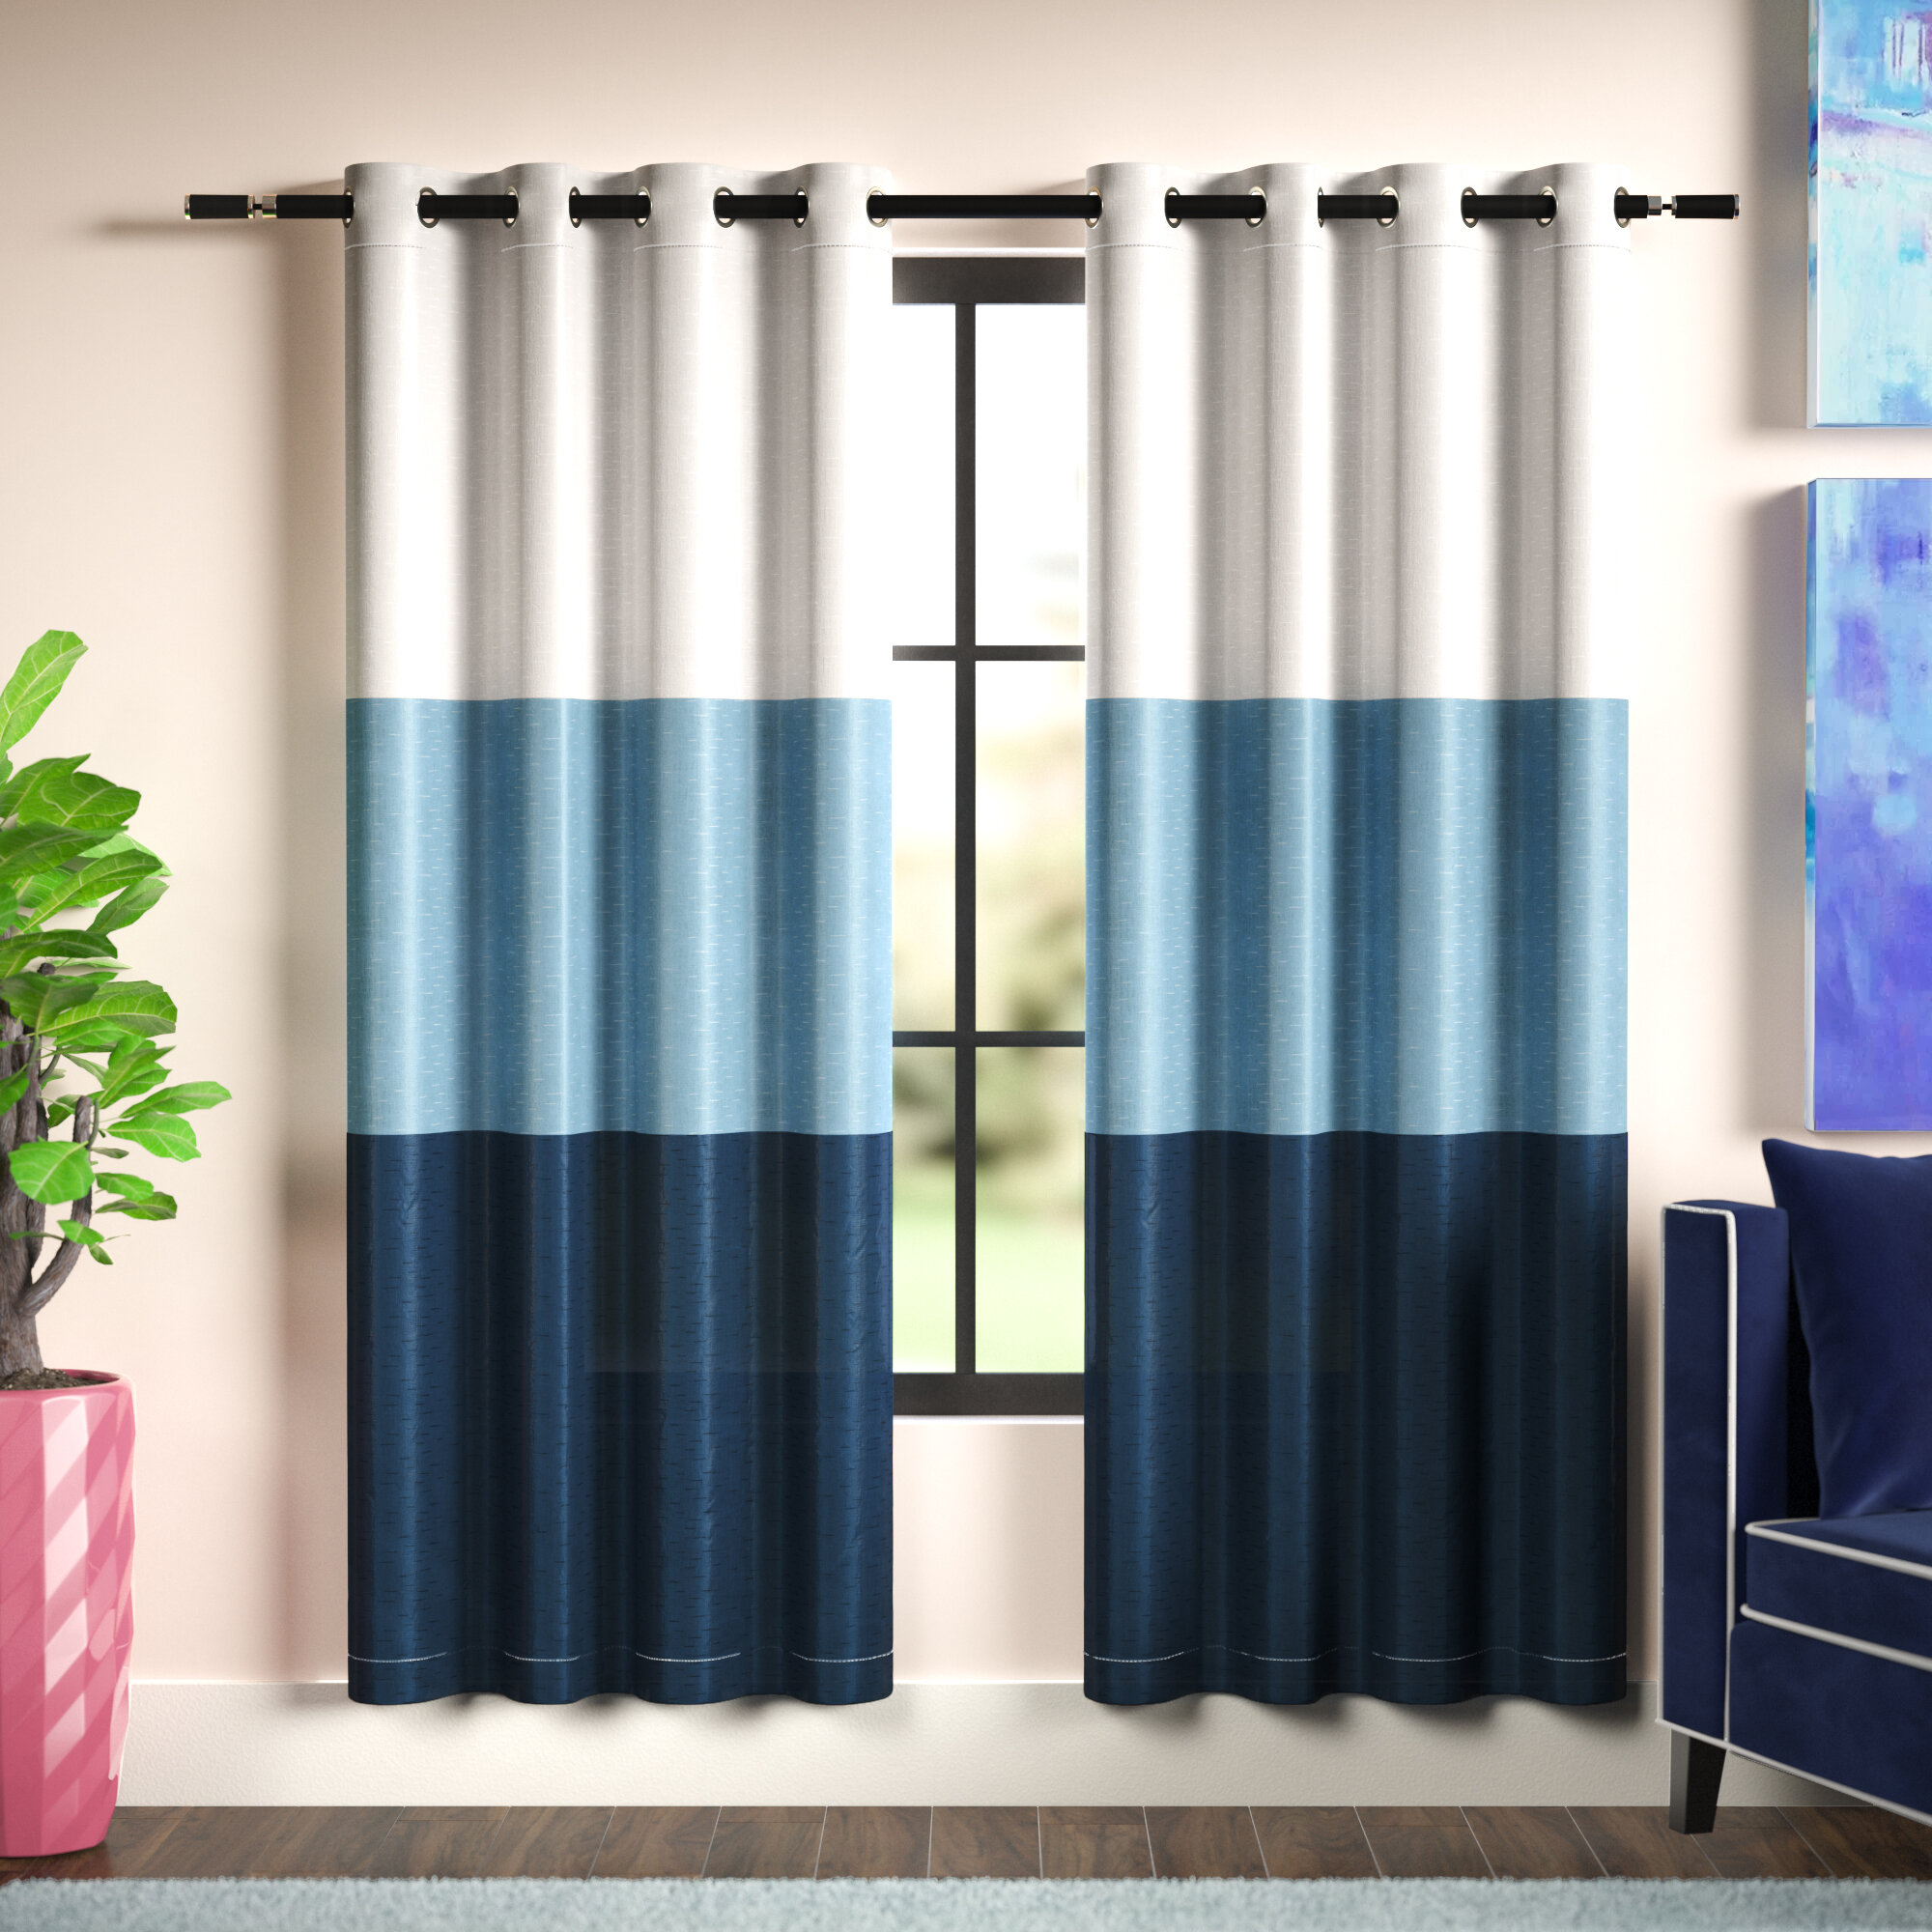 Striped Curtains Drapes You Ll Love In 2021 Wayfair